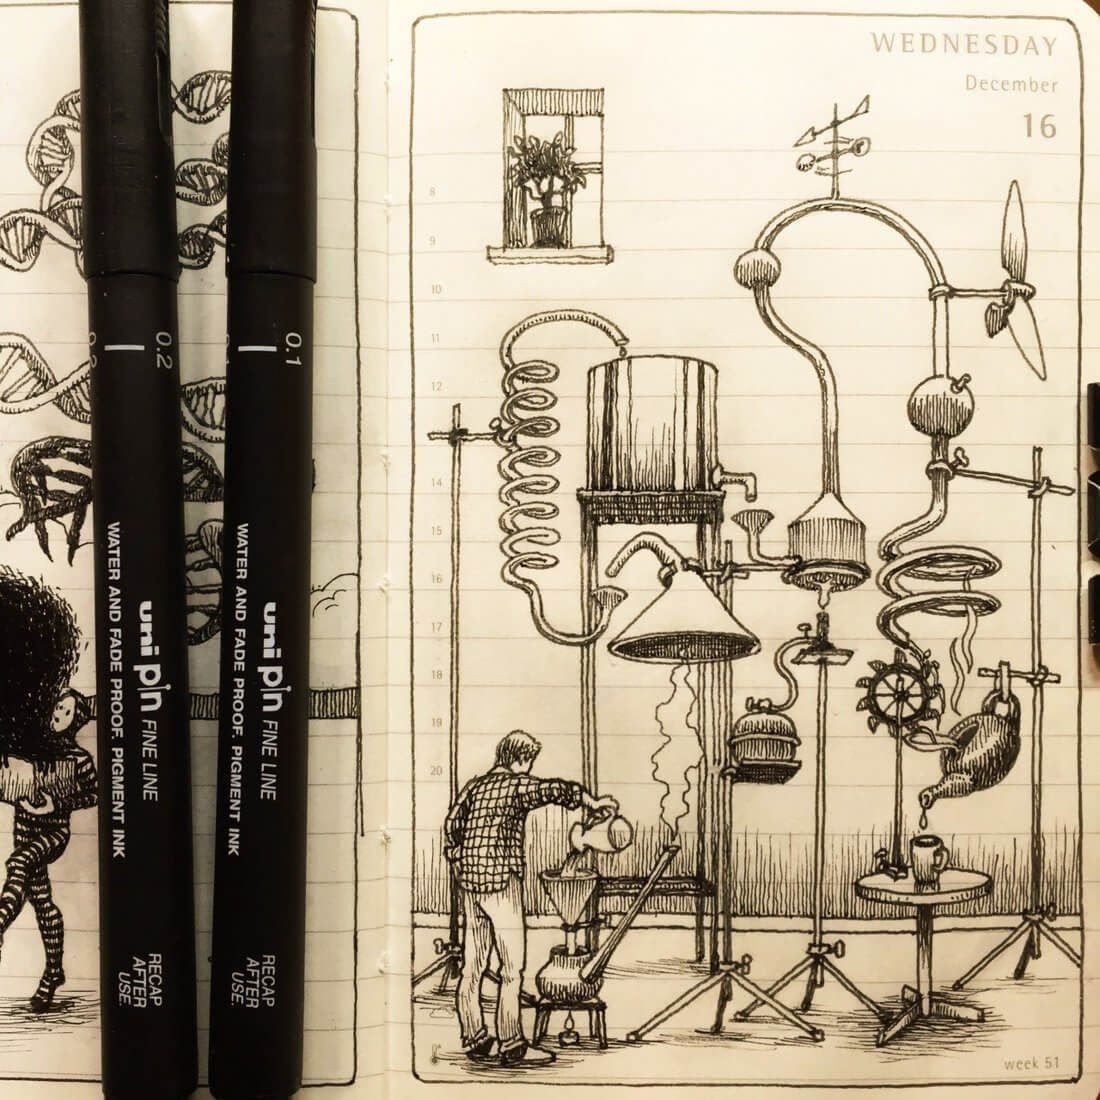 03-Simple-and-Complex-Nina-Johansson-Moleskine-Diary-of-Surreal-Ink-Drawings-www-designstack-co